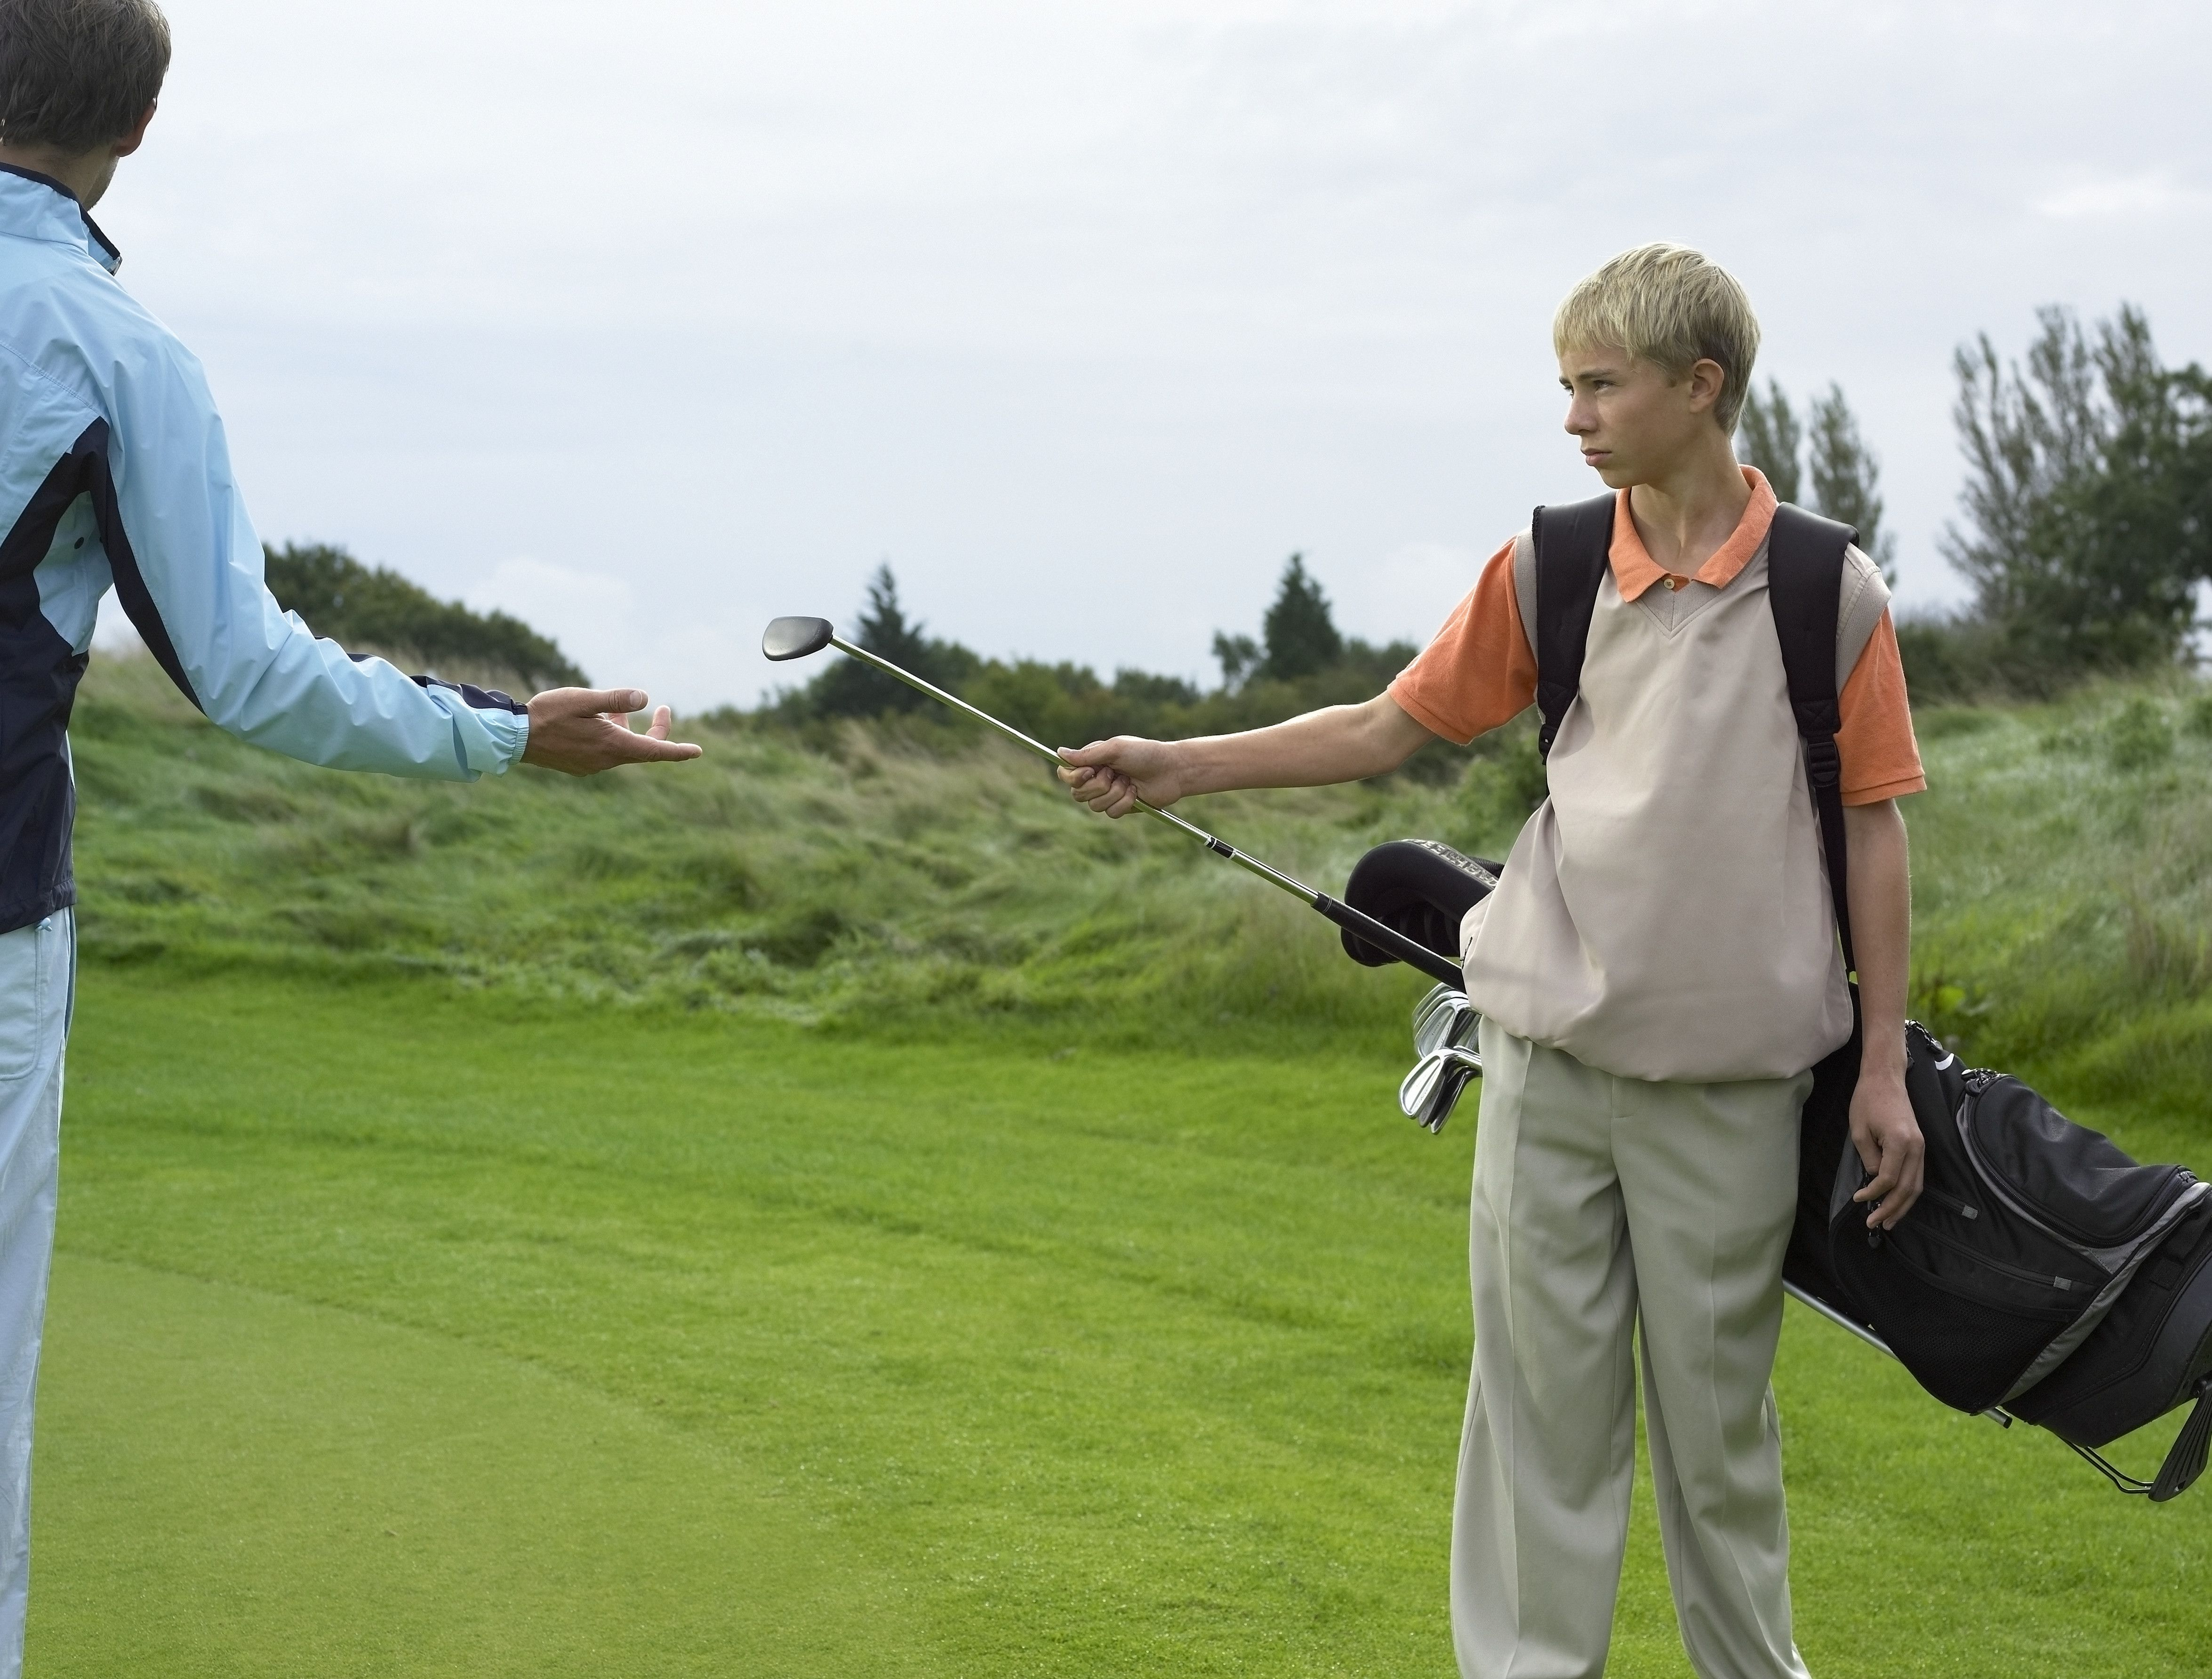 Golf Caddy Resume Michigan Legal Age To Work And Other Requirements